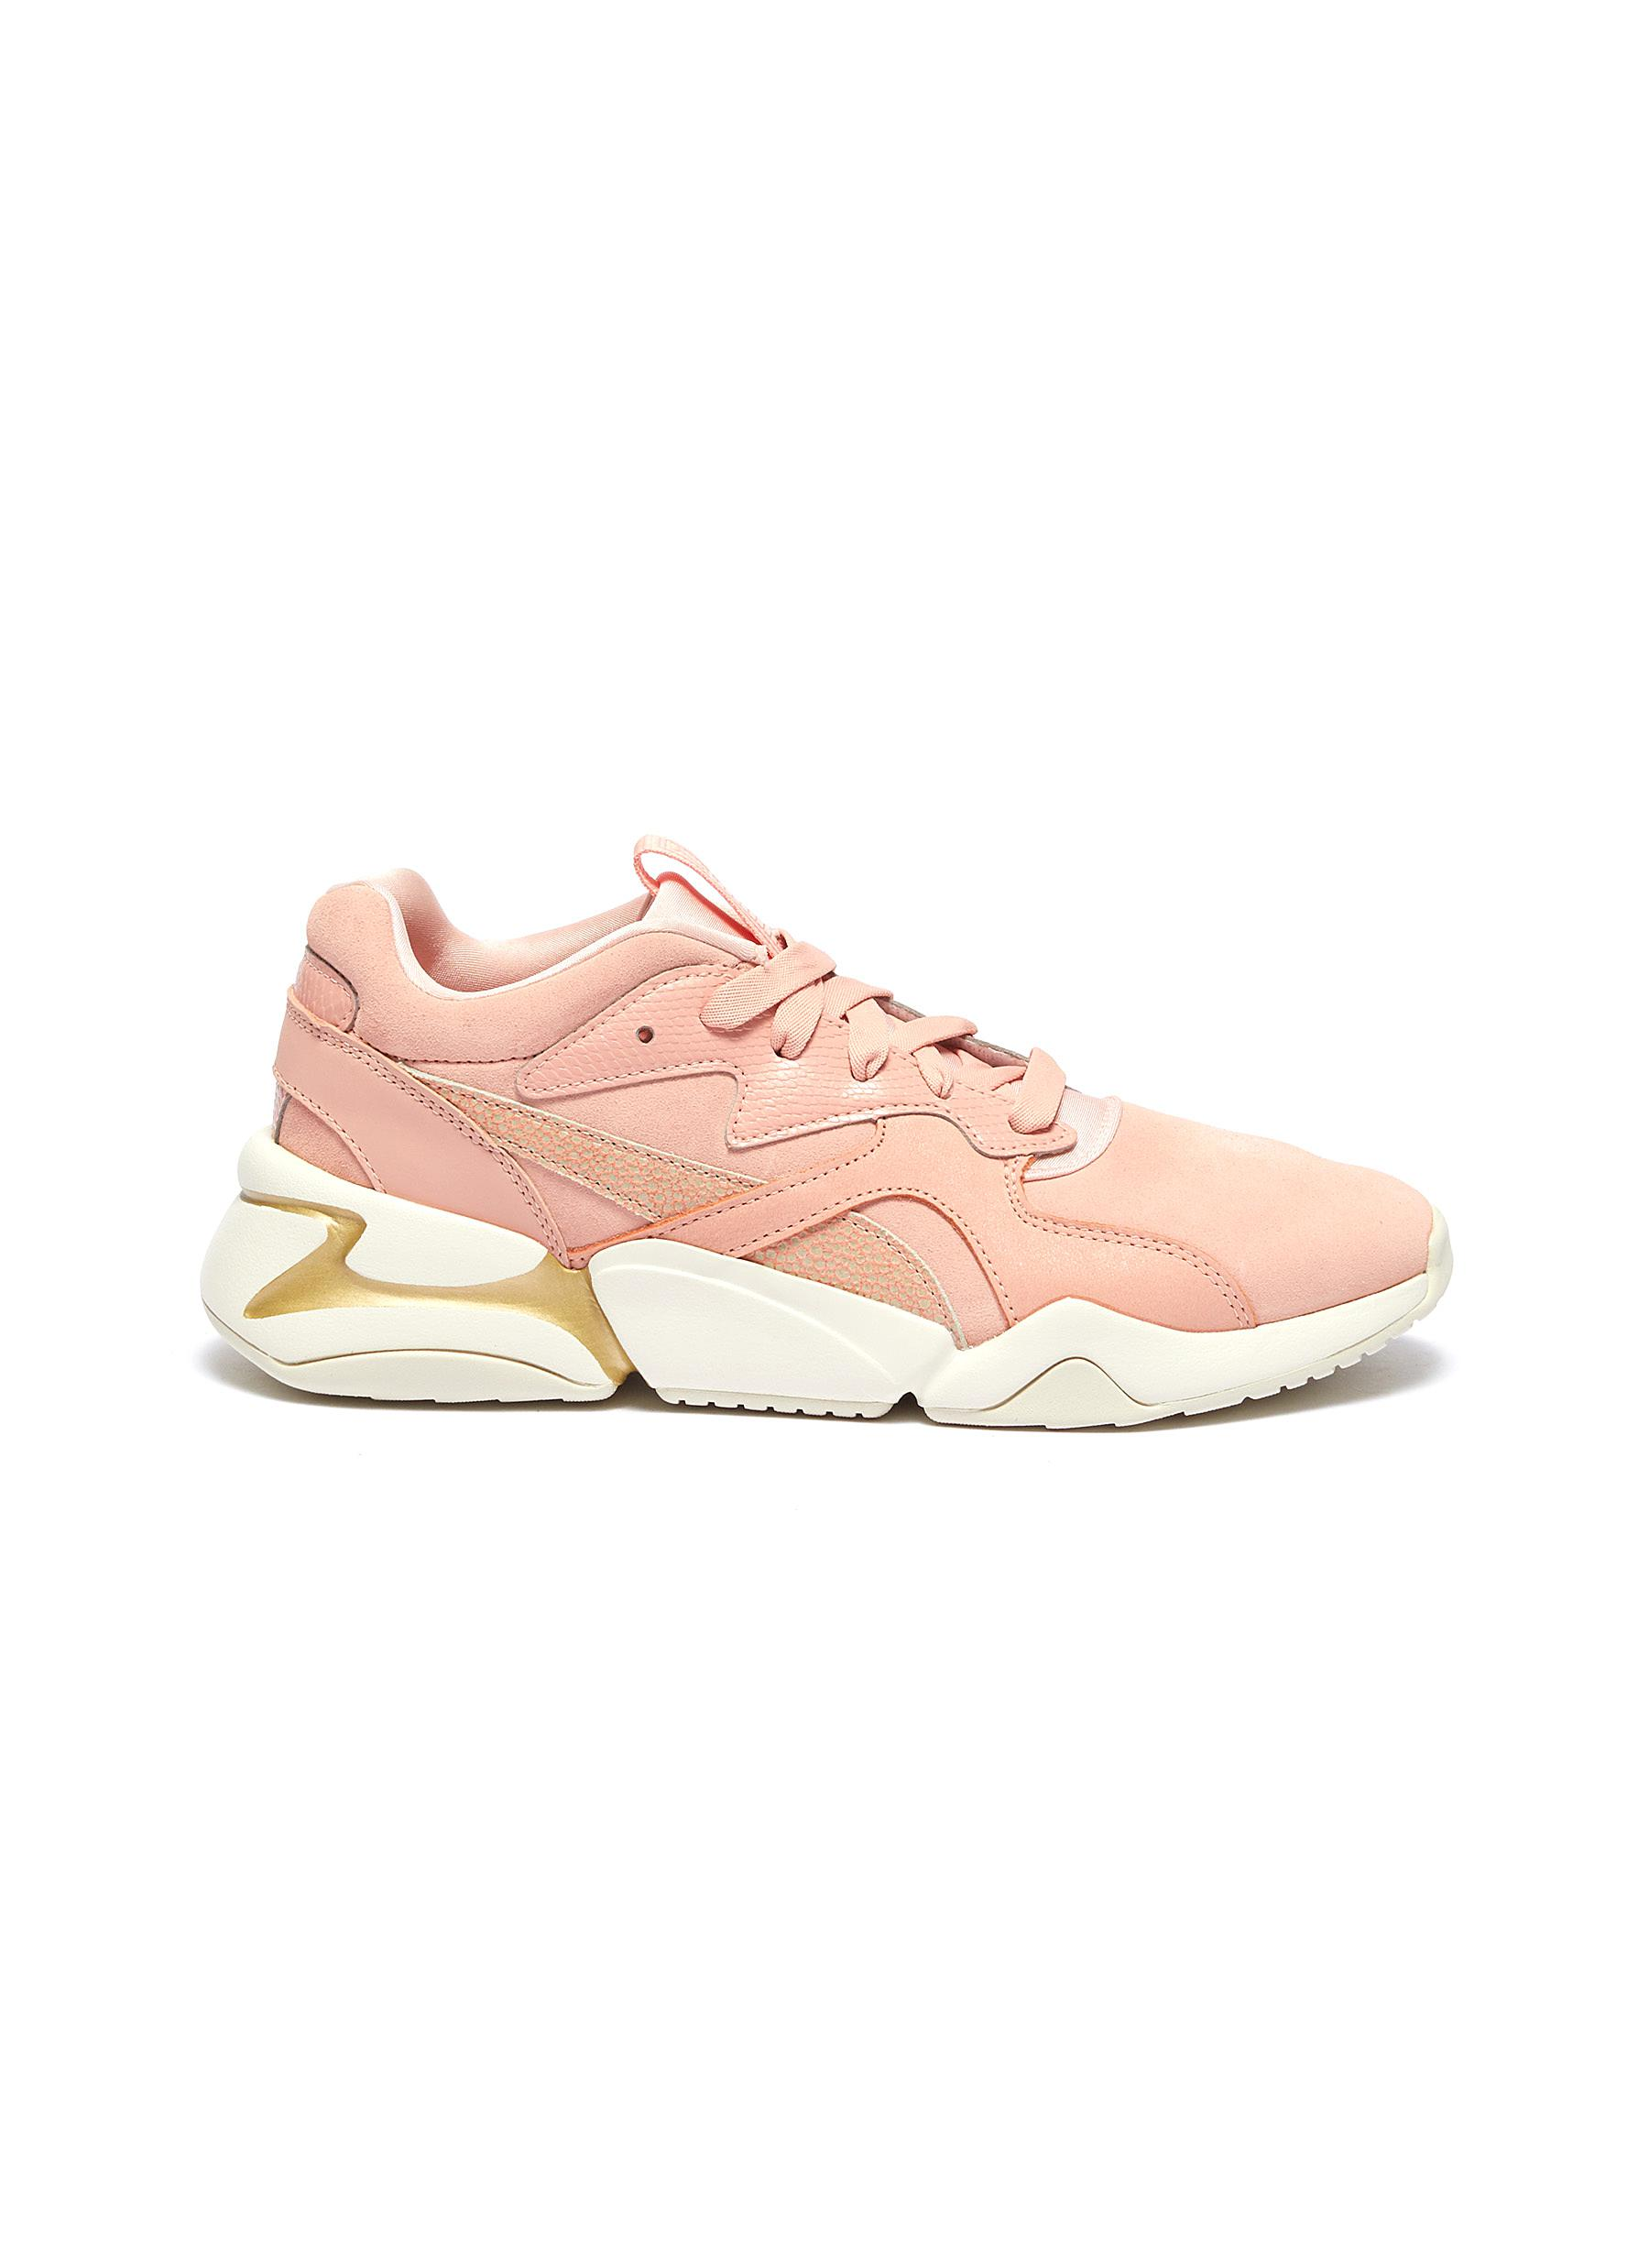 21e0a1167c Main View - Click To Enlarge - PUMA - 'Nova Pastel Grunge' panelled suede